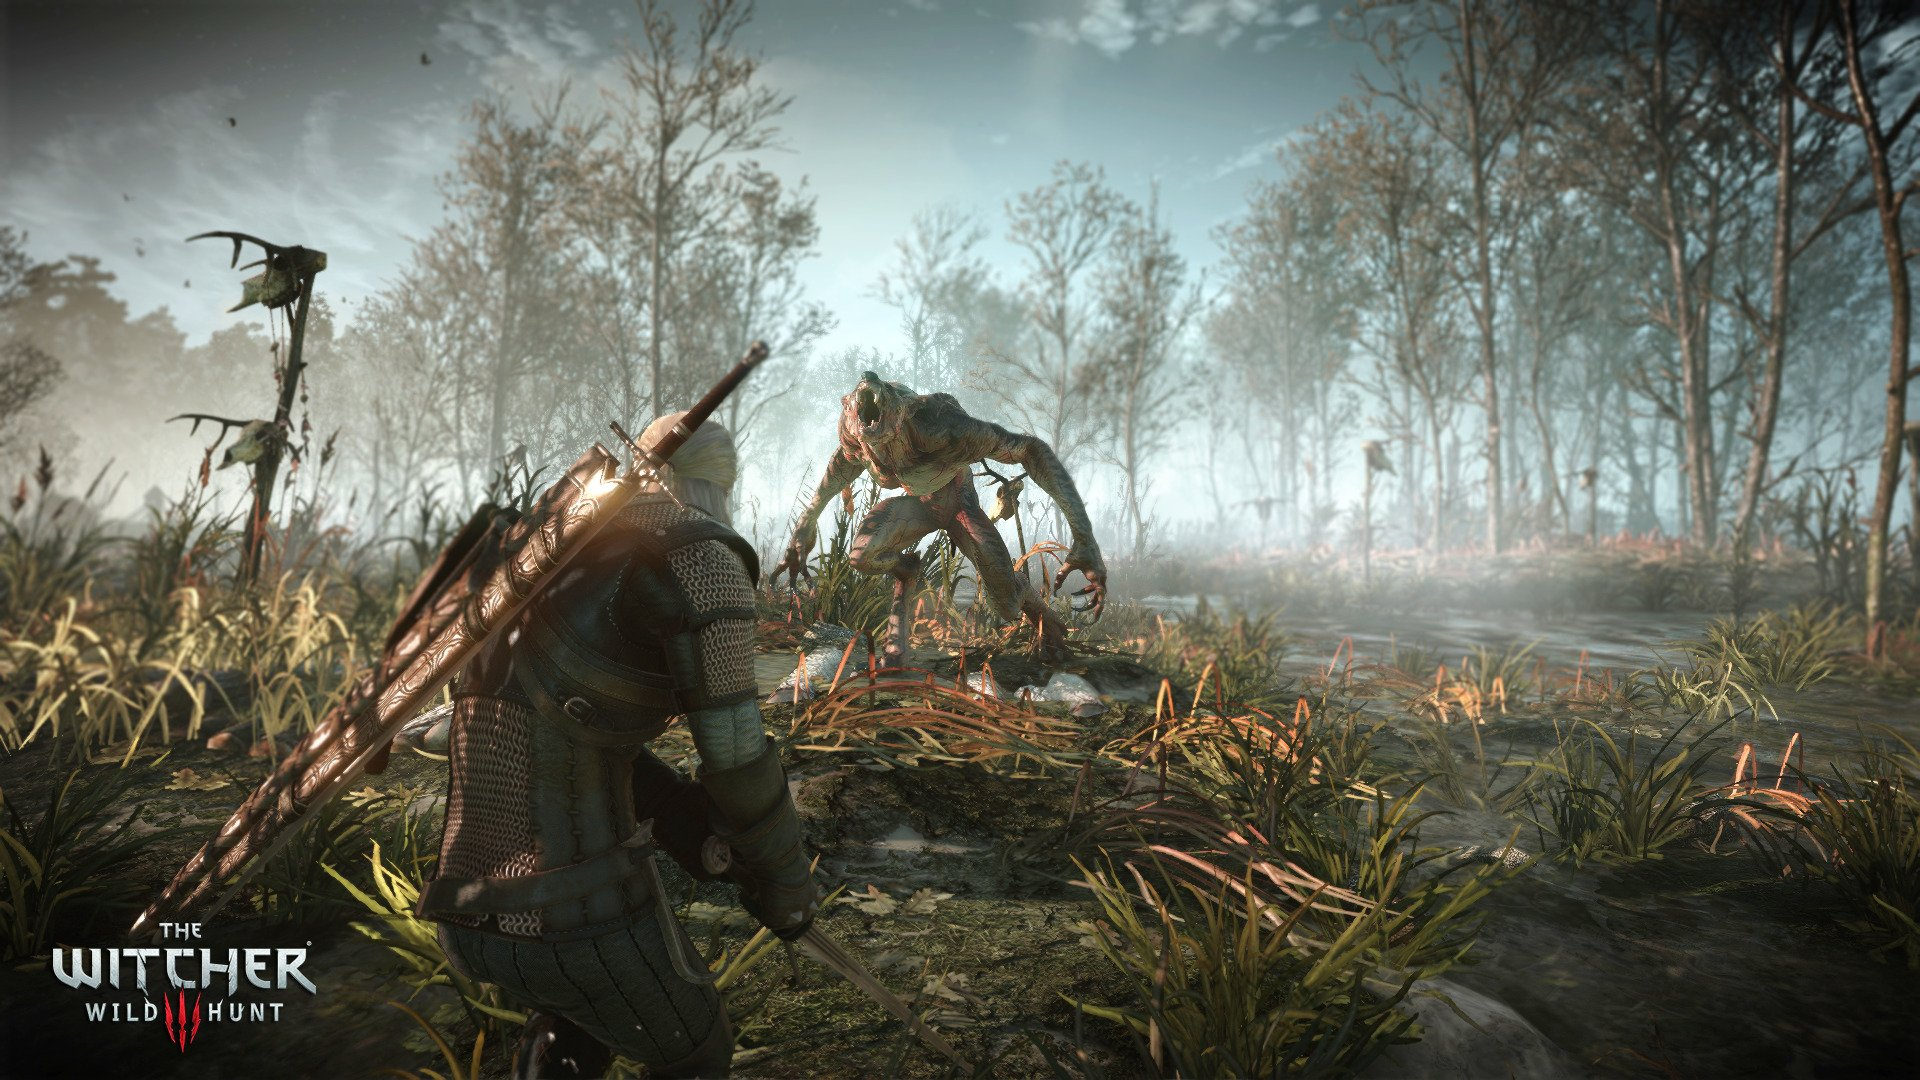 ¡Bombazo! ¡Video extendido de The Witcher 3: Wild Hunt!